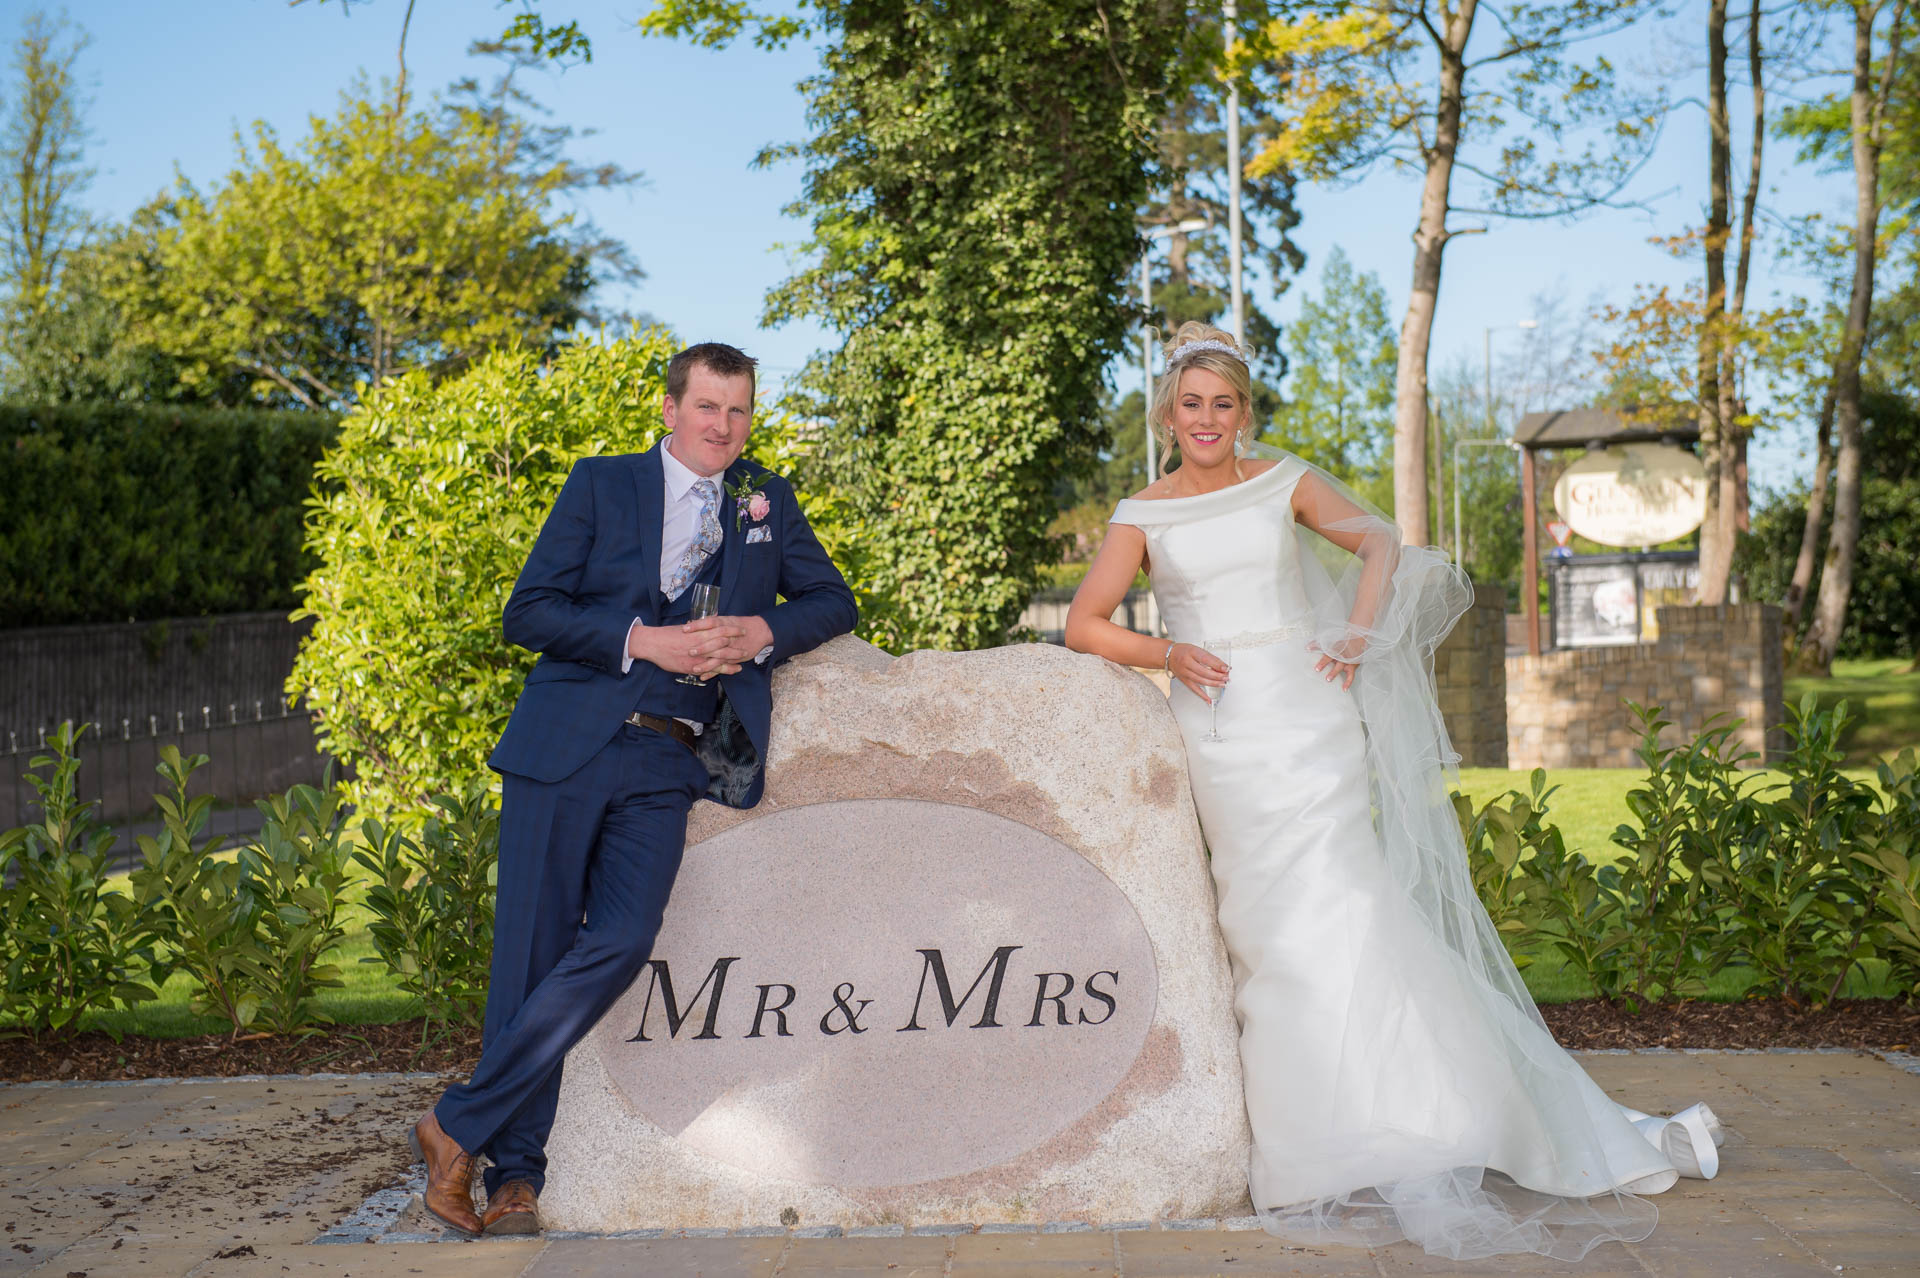 Picture of Noeleen and Cahal at Glenavon House Hotel on their wedding day, captured by Fermanagh, Tyrone and Northern Ireland Wedding Photographer, Trevor Lucy Photography